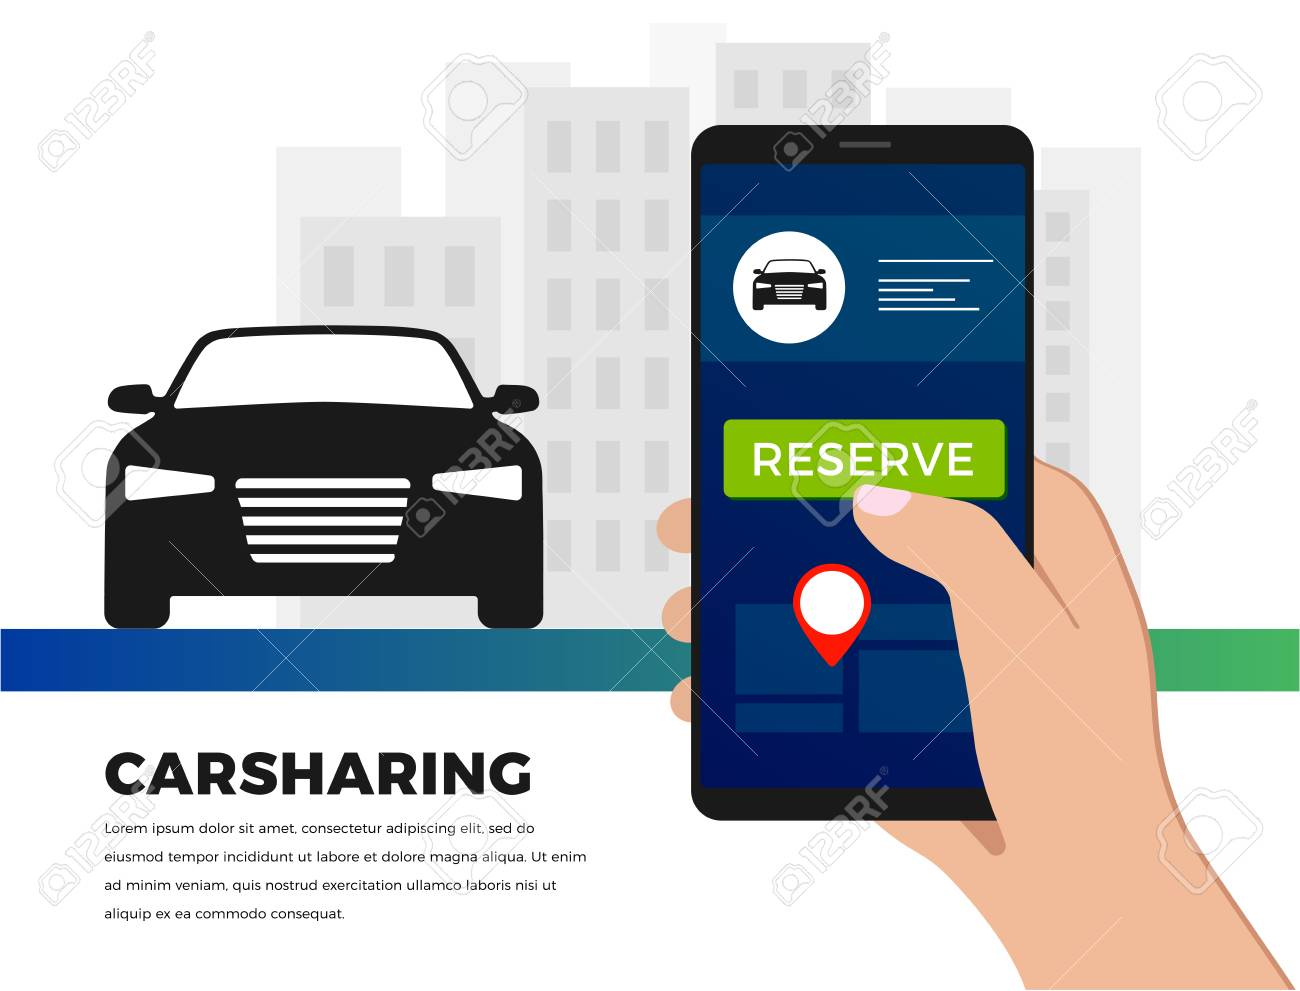 Car-sharing service illustration concept in flat design  Carsharing